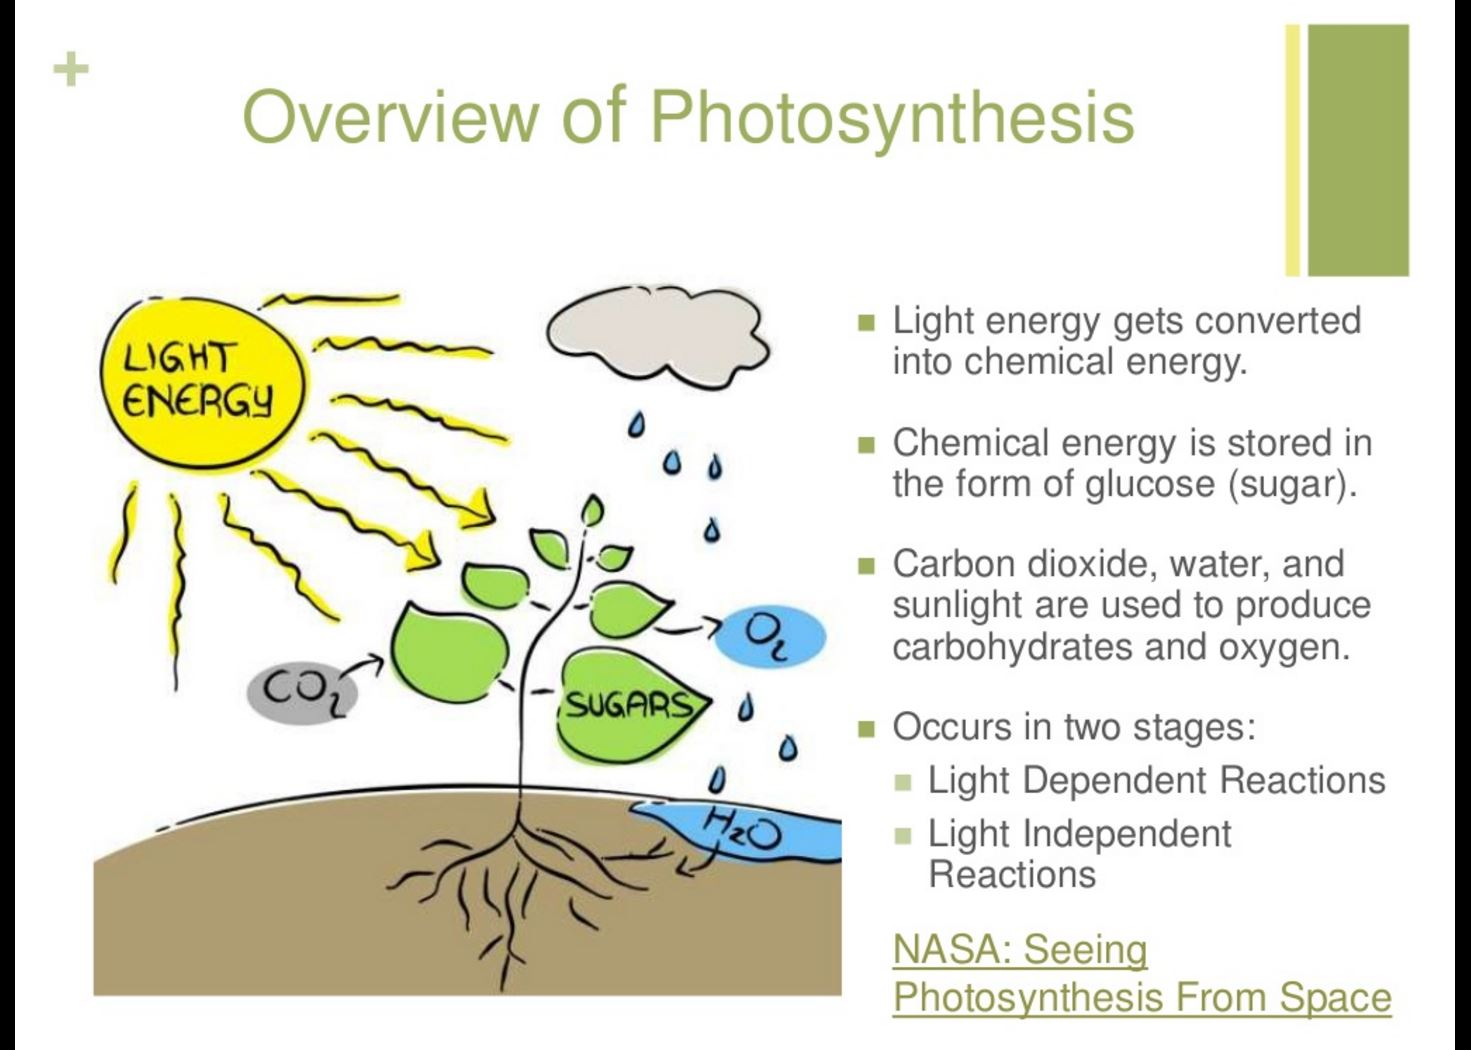 3 energy states of photosynthesis Cached